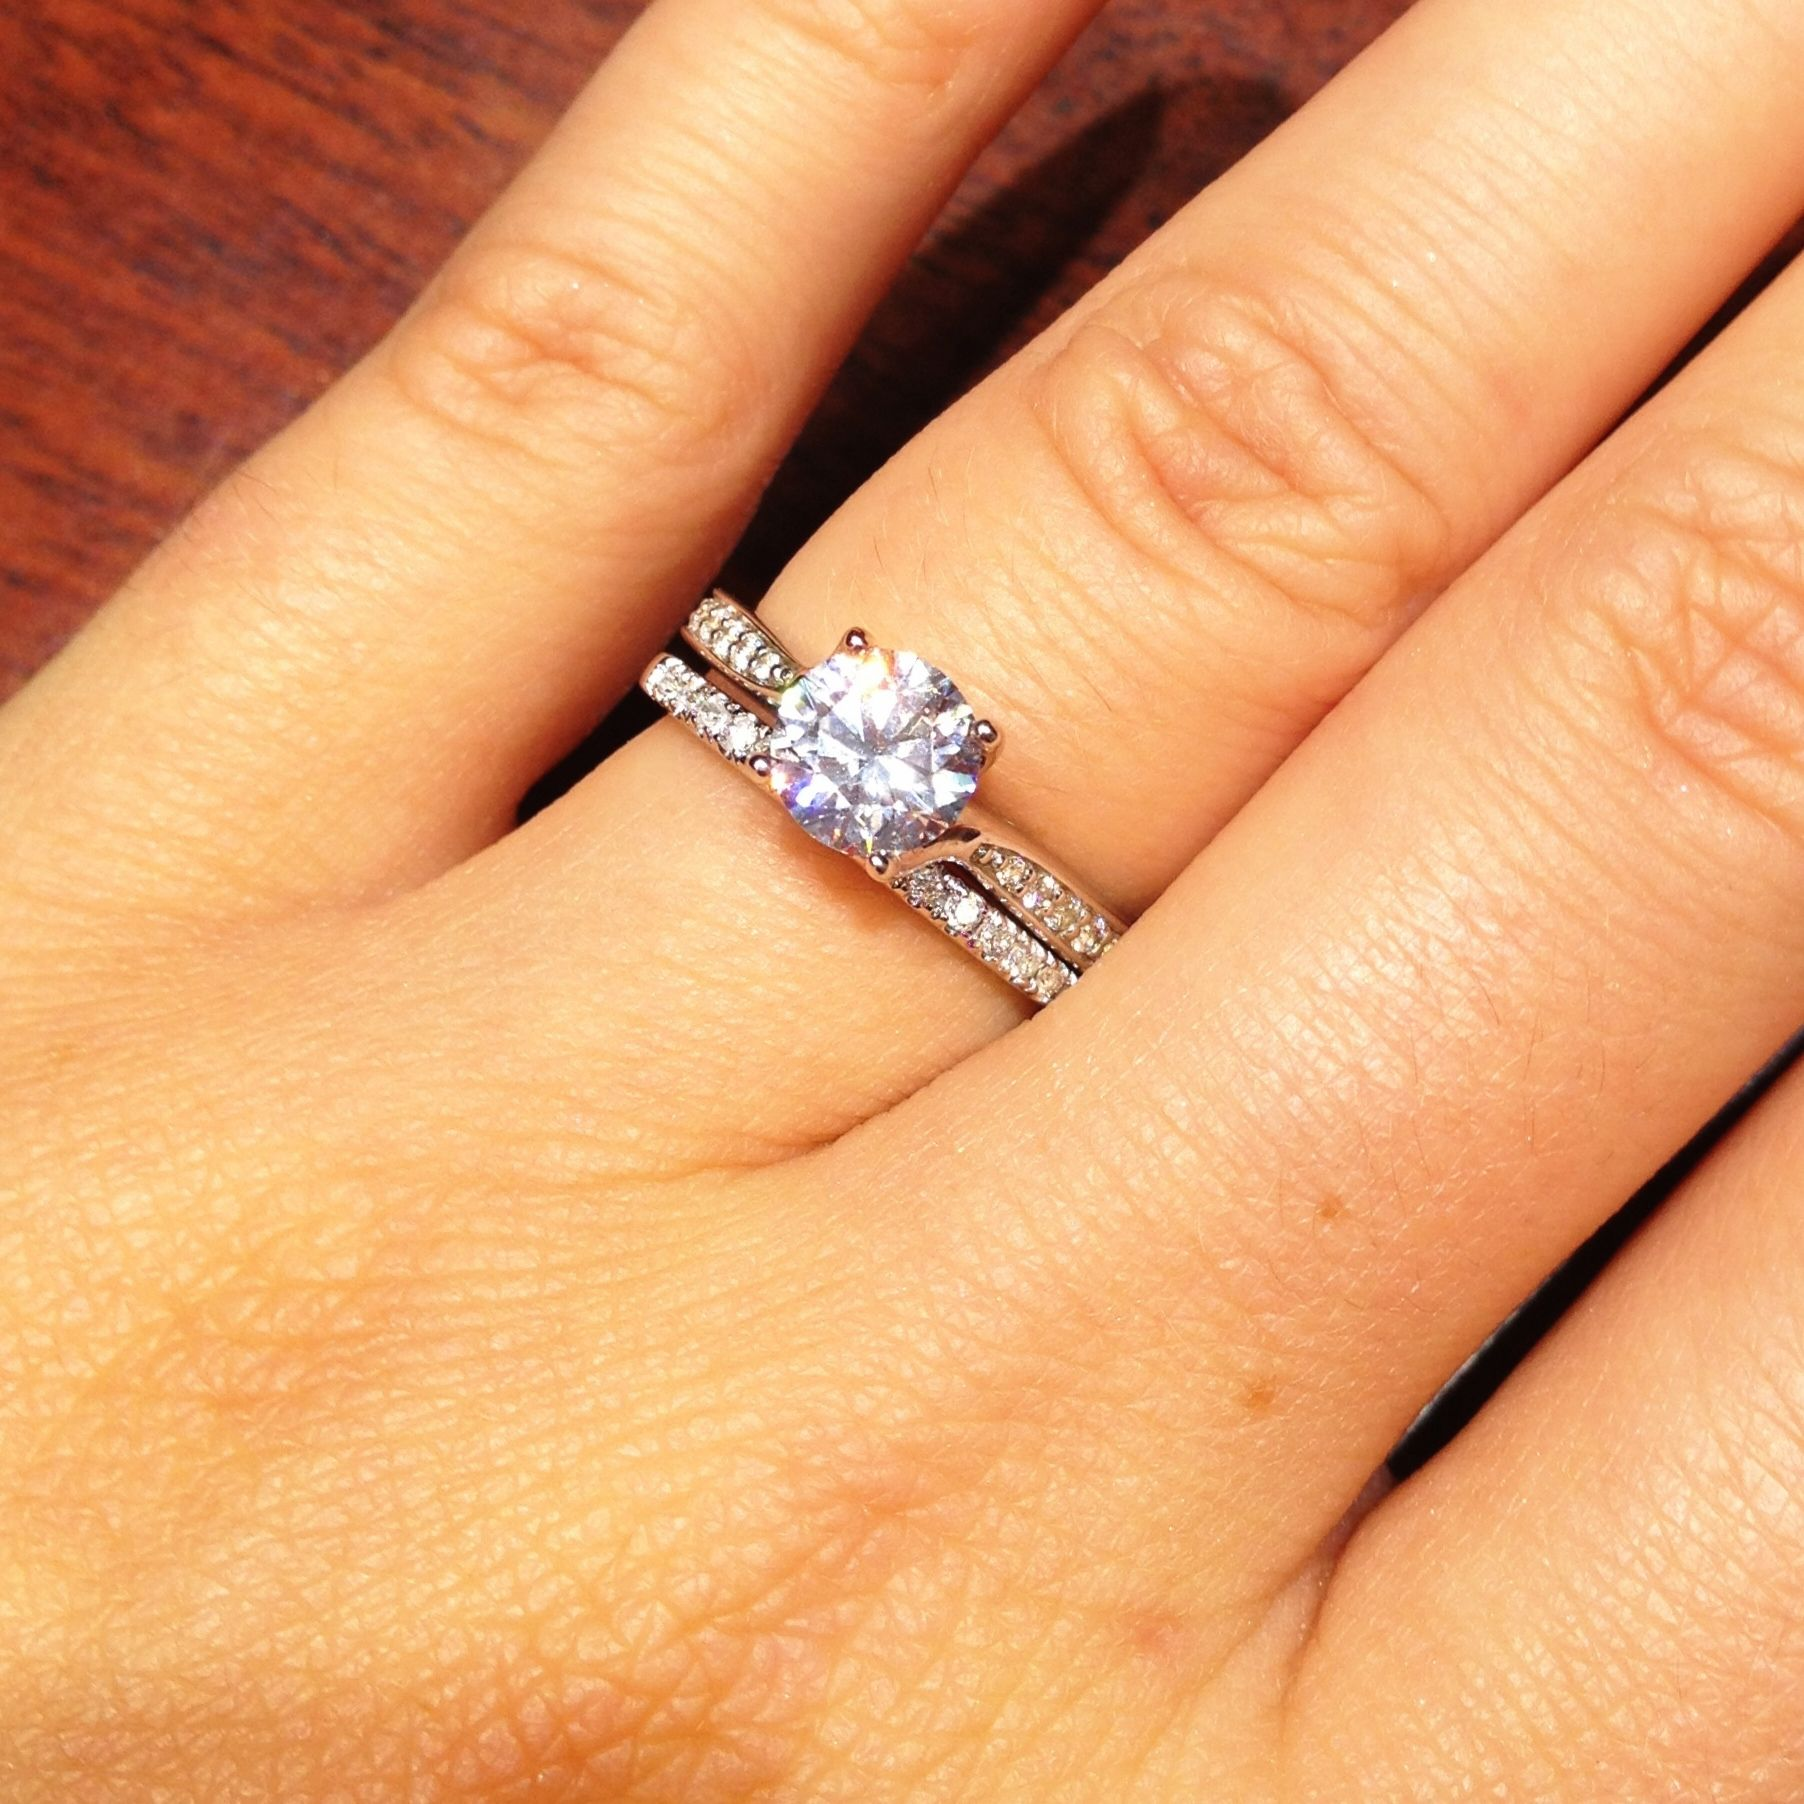 Solitaire Engagement Ring Wedding Rings Engagement Future Engagement Rings Wedding Rings